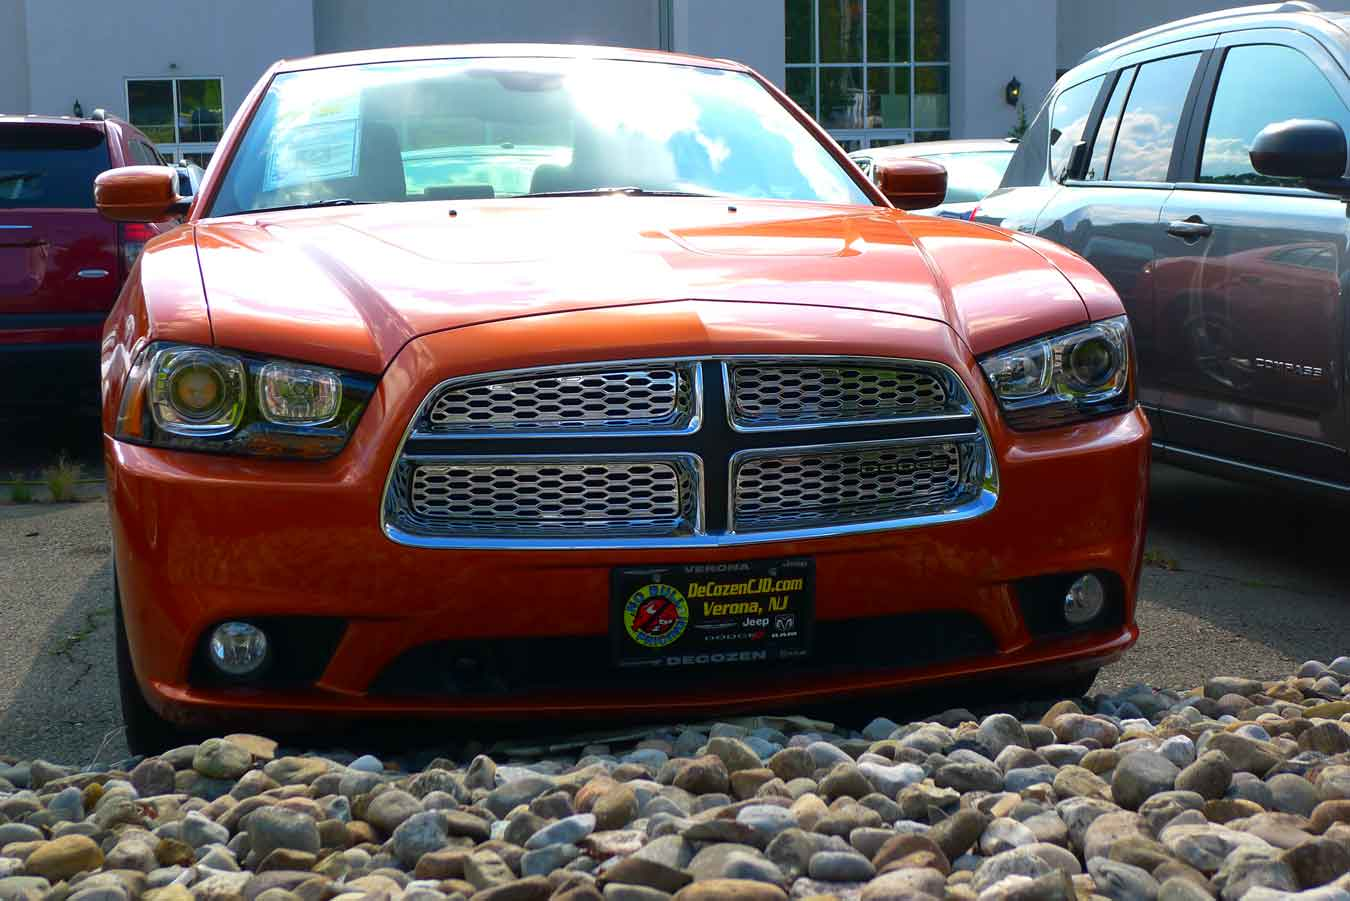 2012 dodge charger with chrome mesh grille